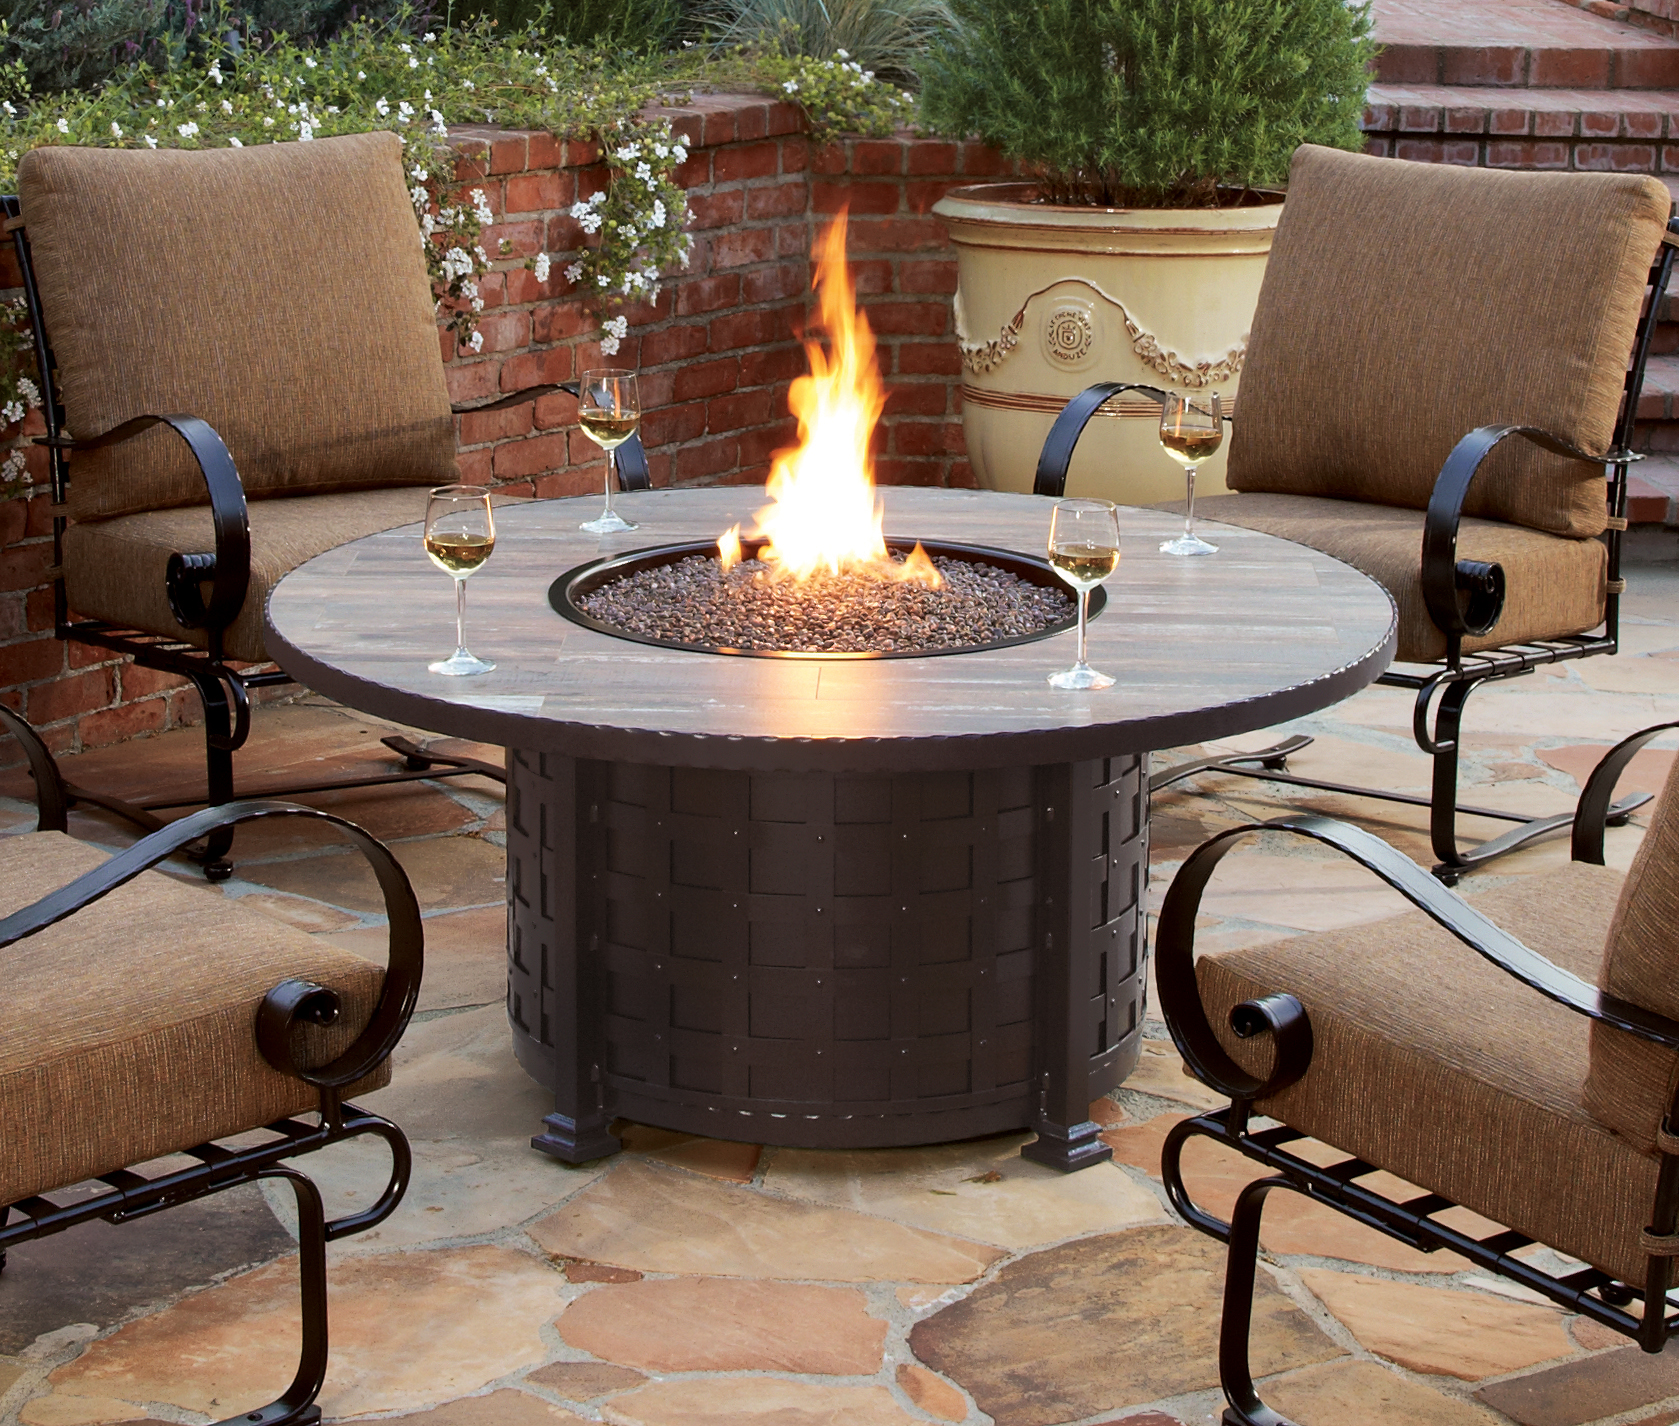 Patio Heaters U0026 Fire Pits   Enjoy The Cool Fall Evenings Outdoors